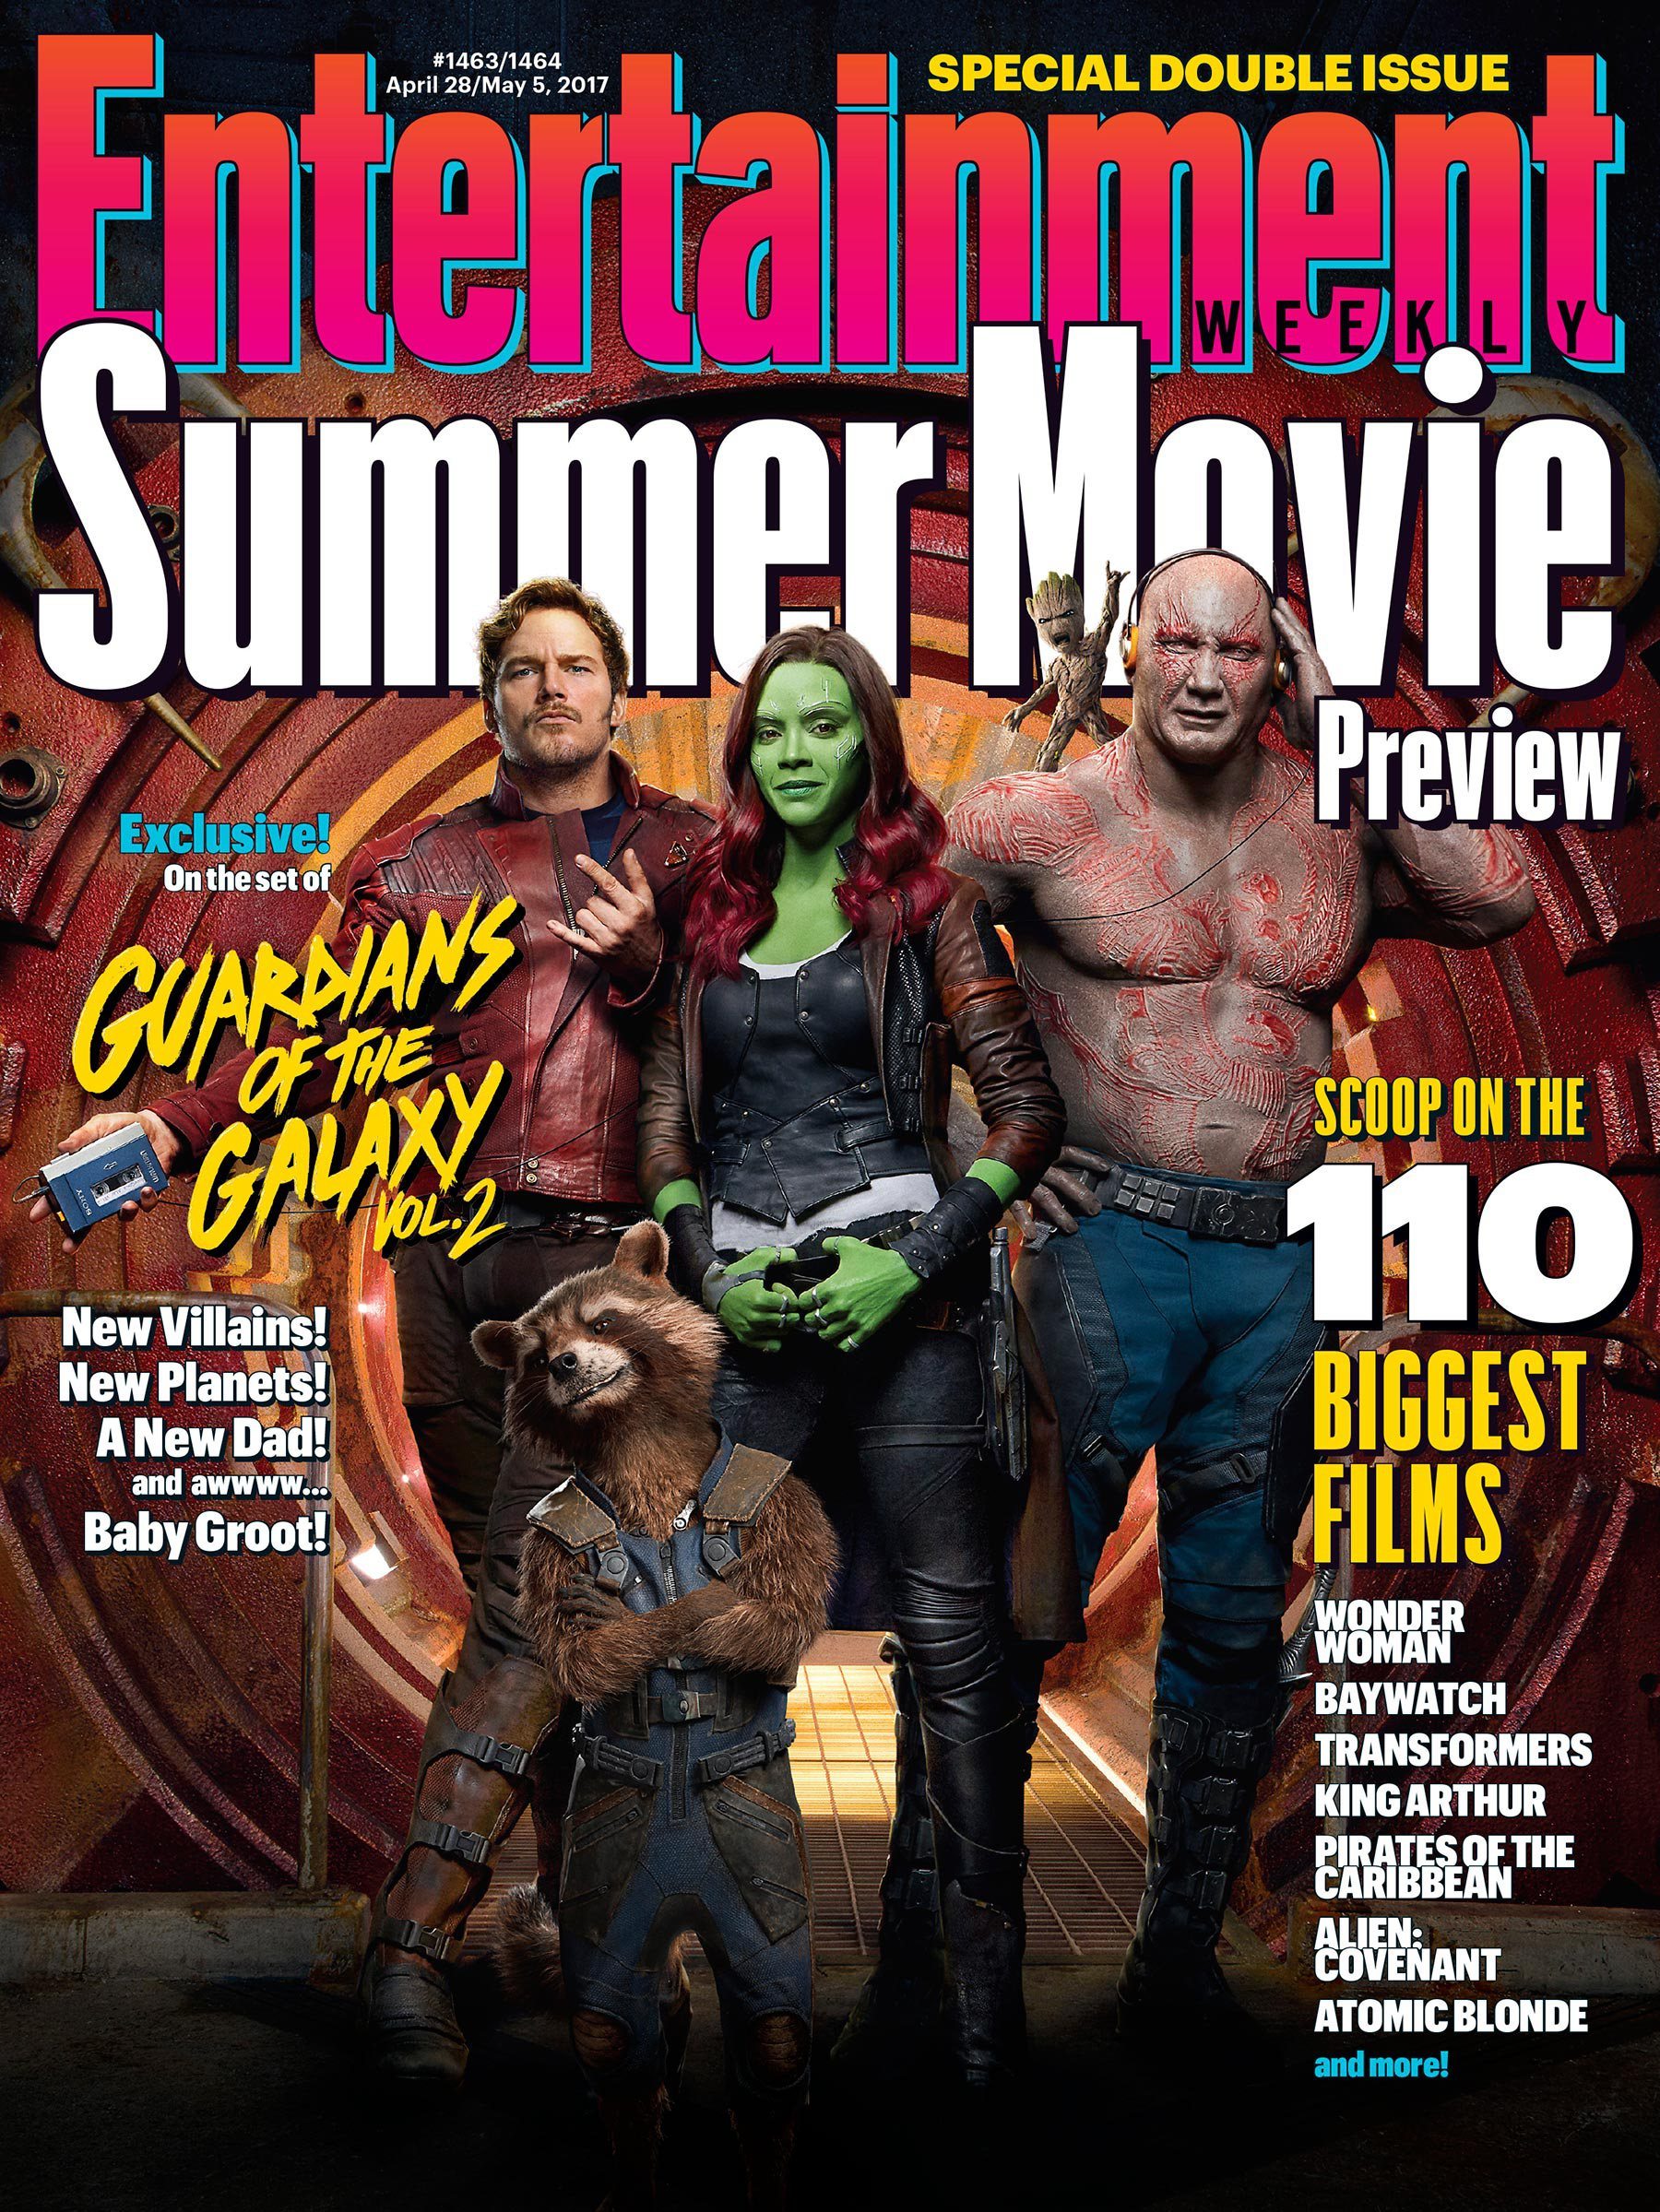 Guardians Of The Galaxy Vol. 2 Lights Up The Latest EW Cover As New Promo Showcases Awesome Mix Vol. 2